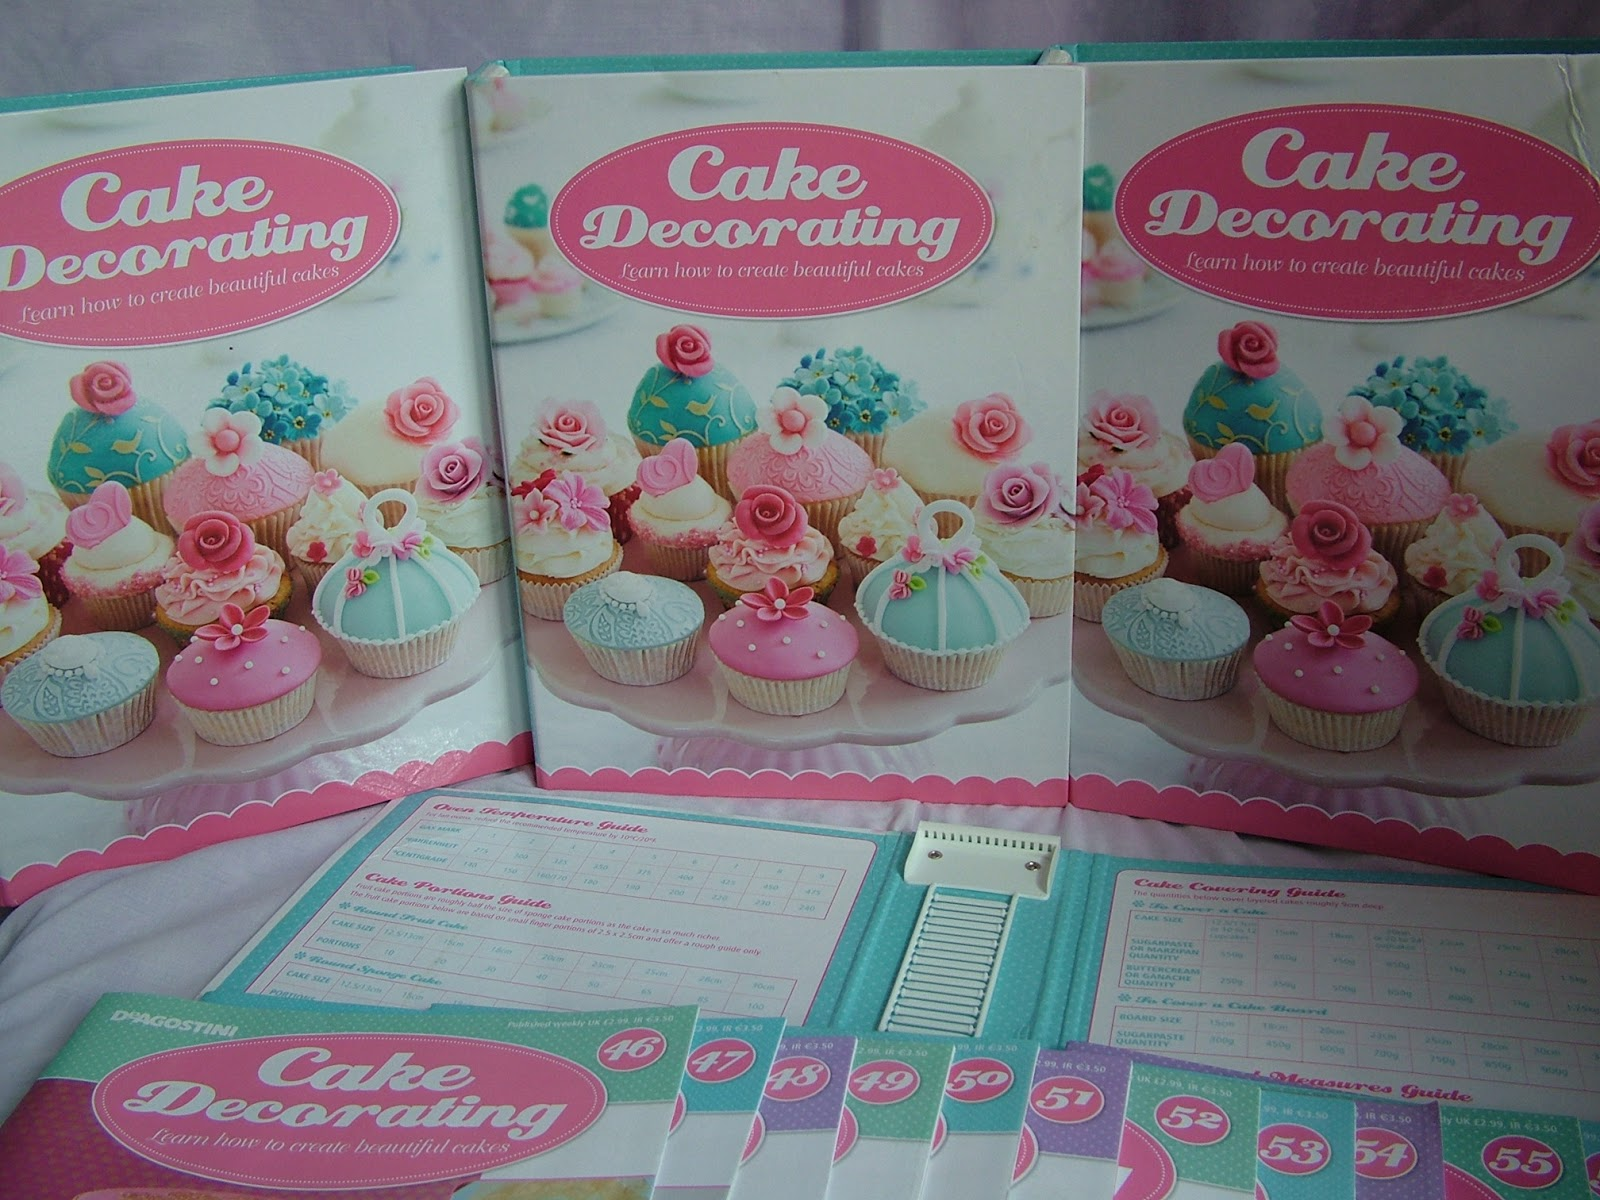 cakes and bakeskate: review - cake decorating magazine